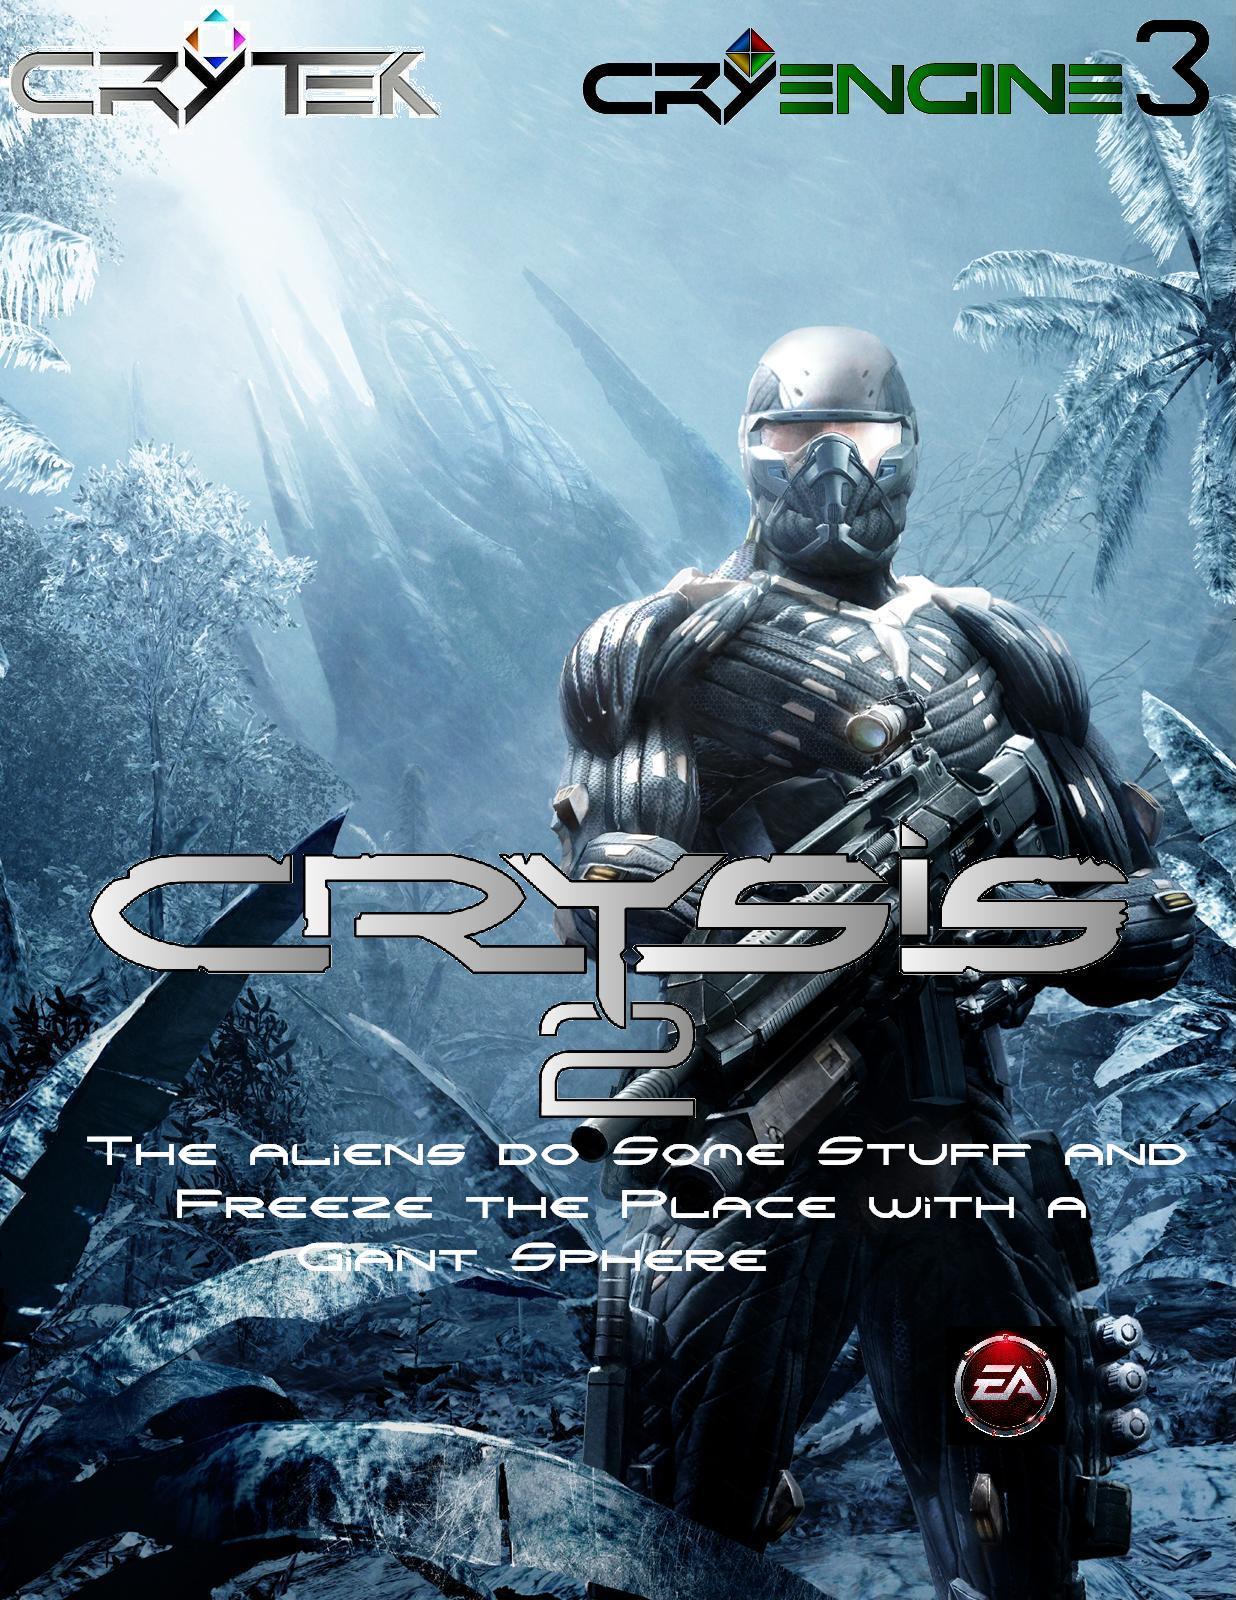 Crysis 2 : Directx 11 Ultra Upgrade + High Resolution Texture Pack